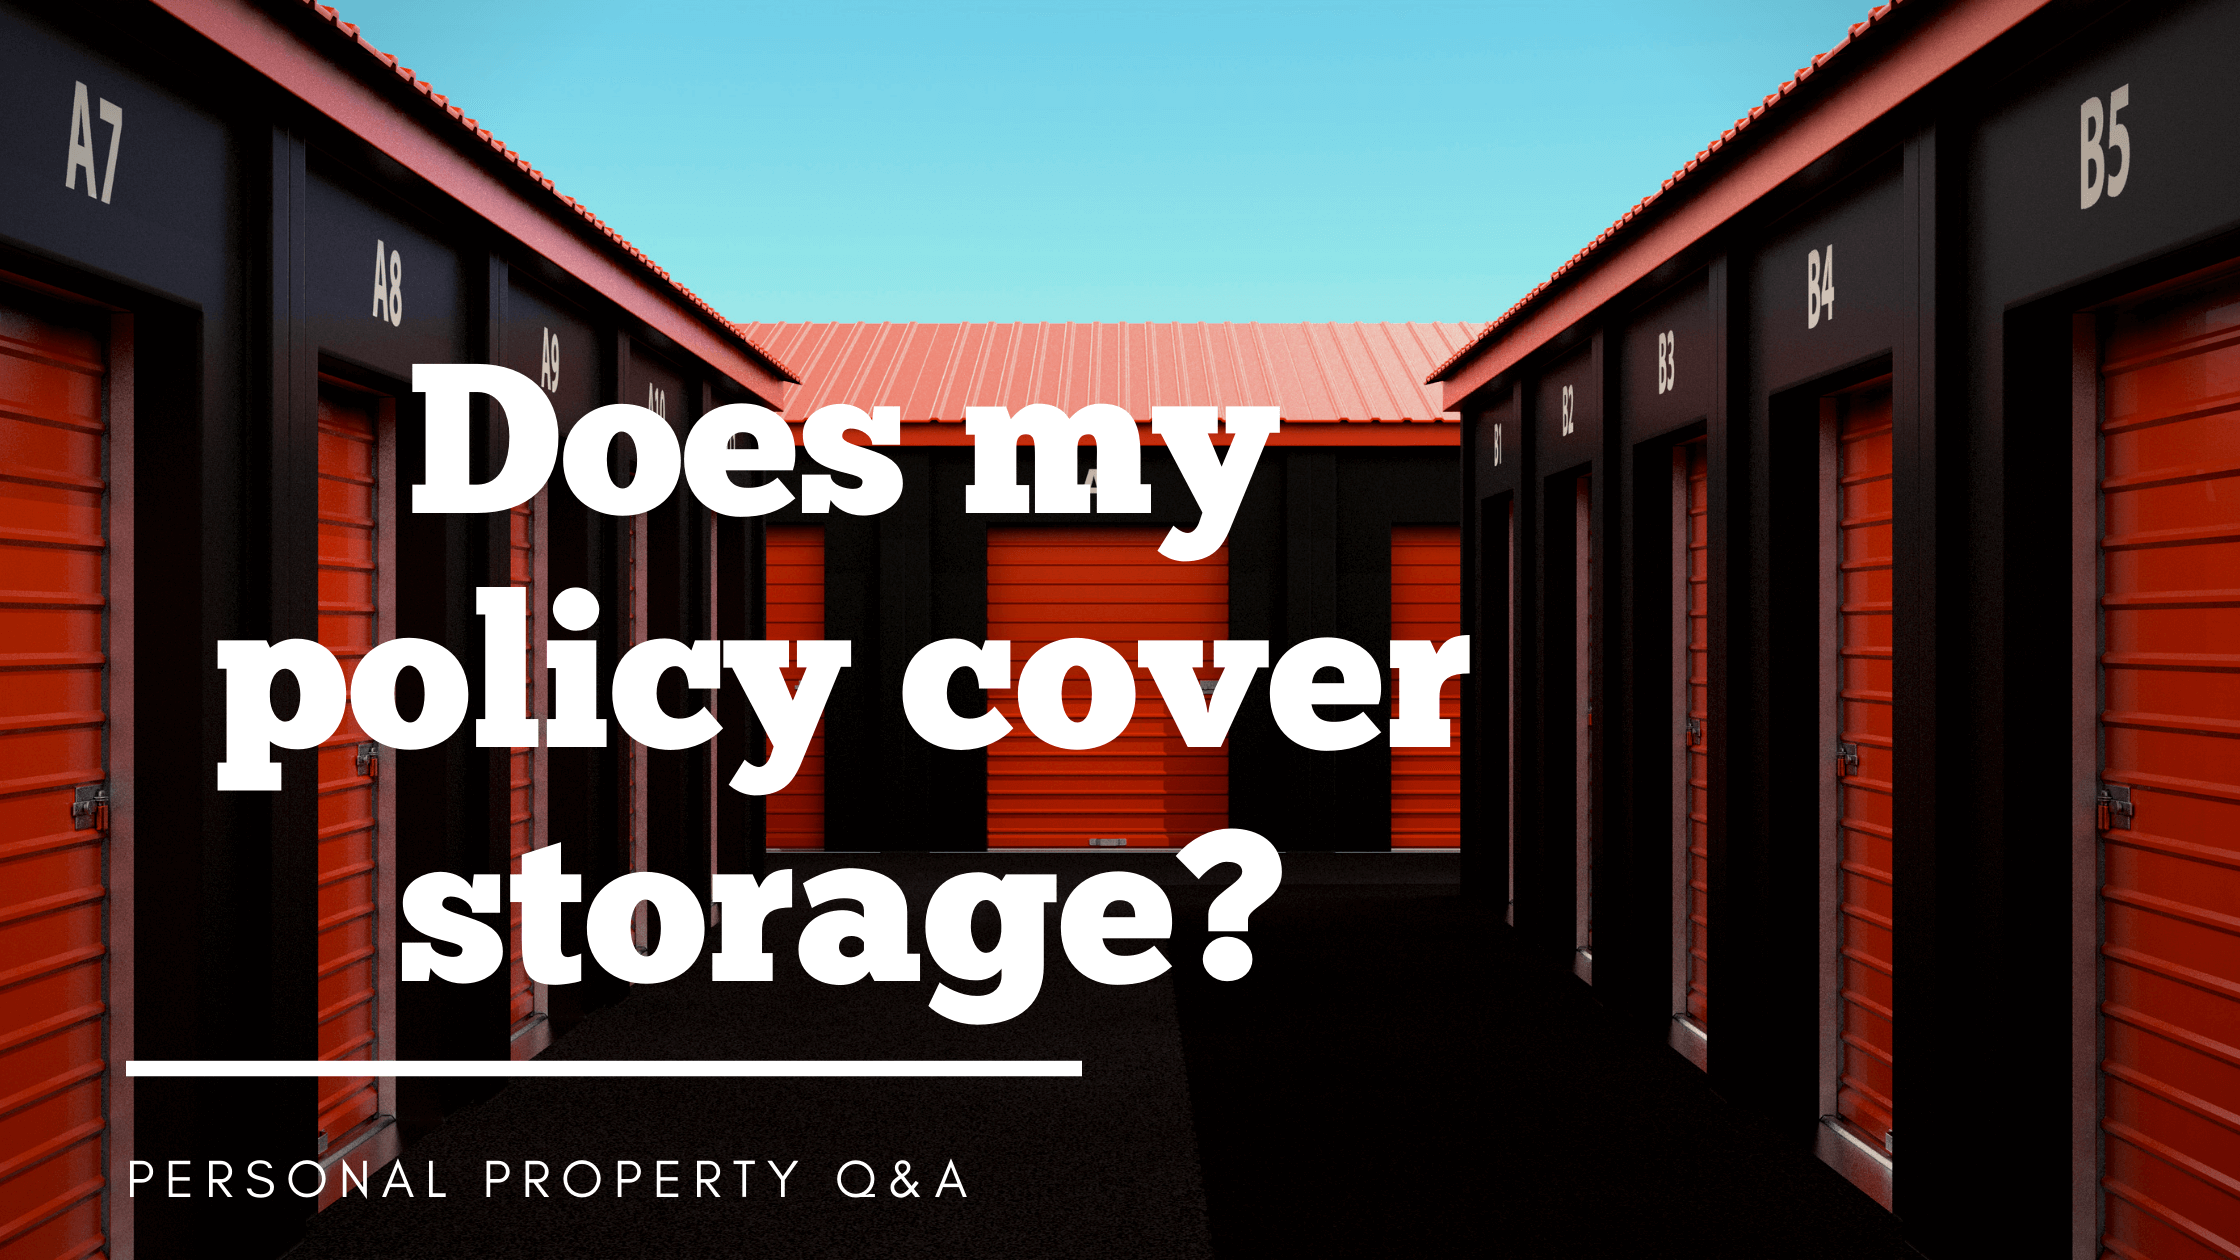 Does home or renter's insurance cover items in storage?